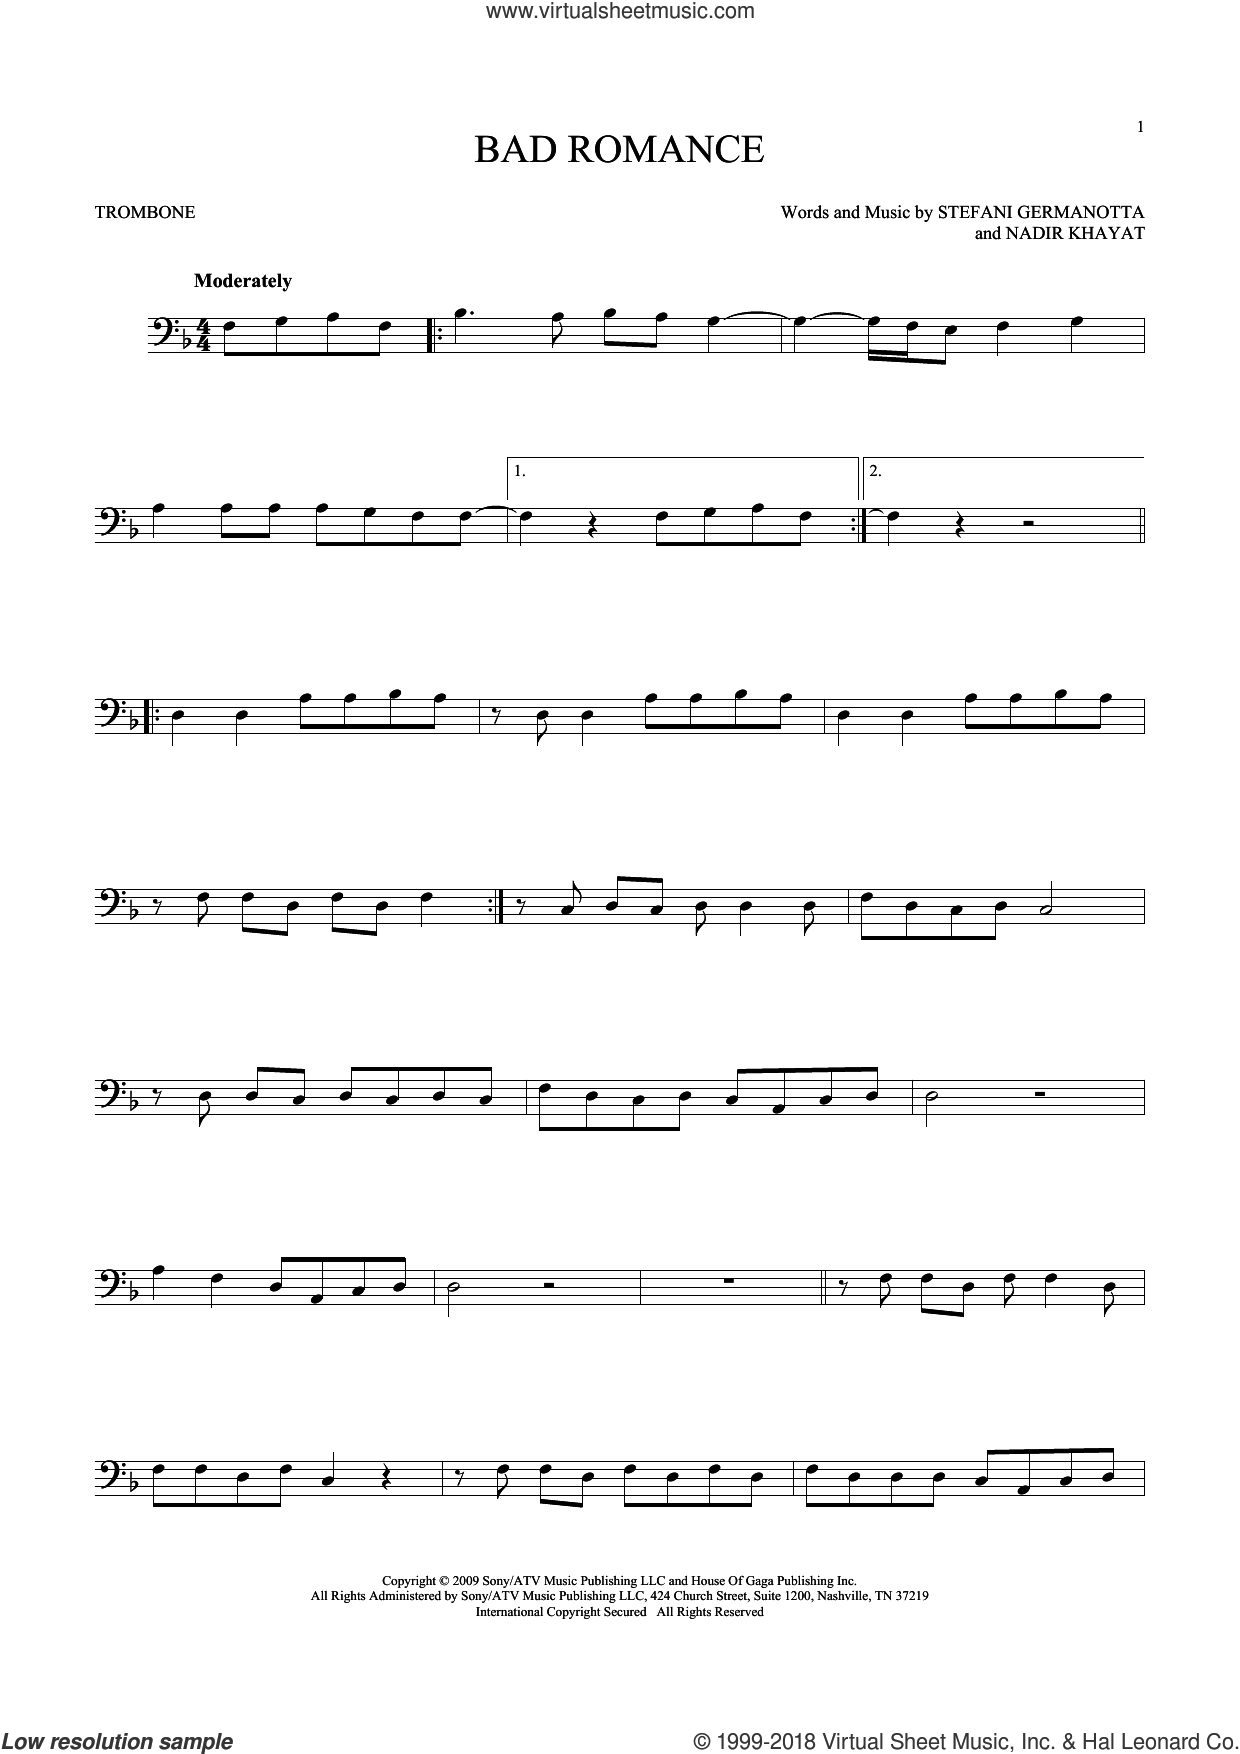 Bad Romance sheet music for trombone solo by Lady Gaga and Nadir Khayat, intermediate skill level